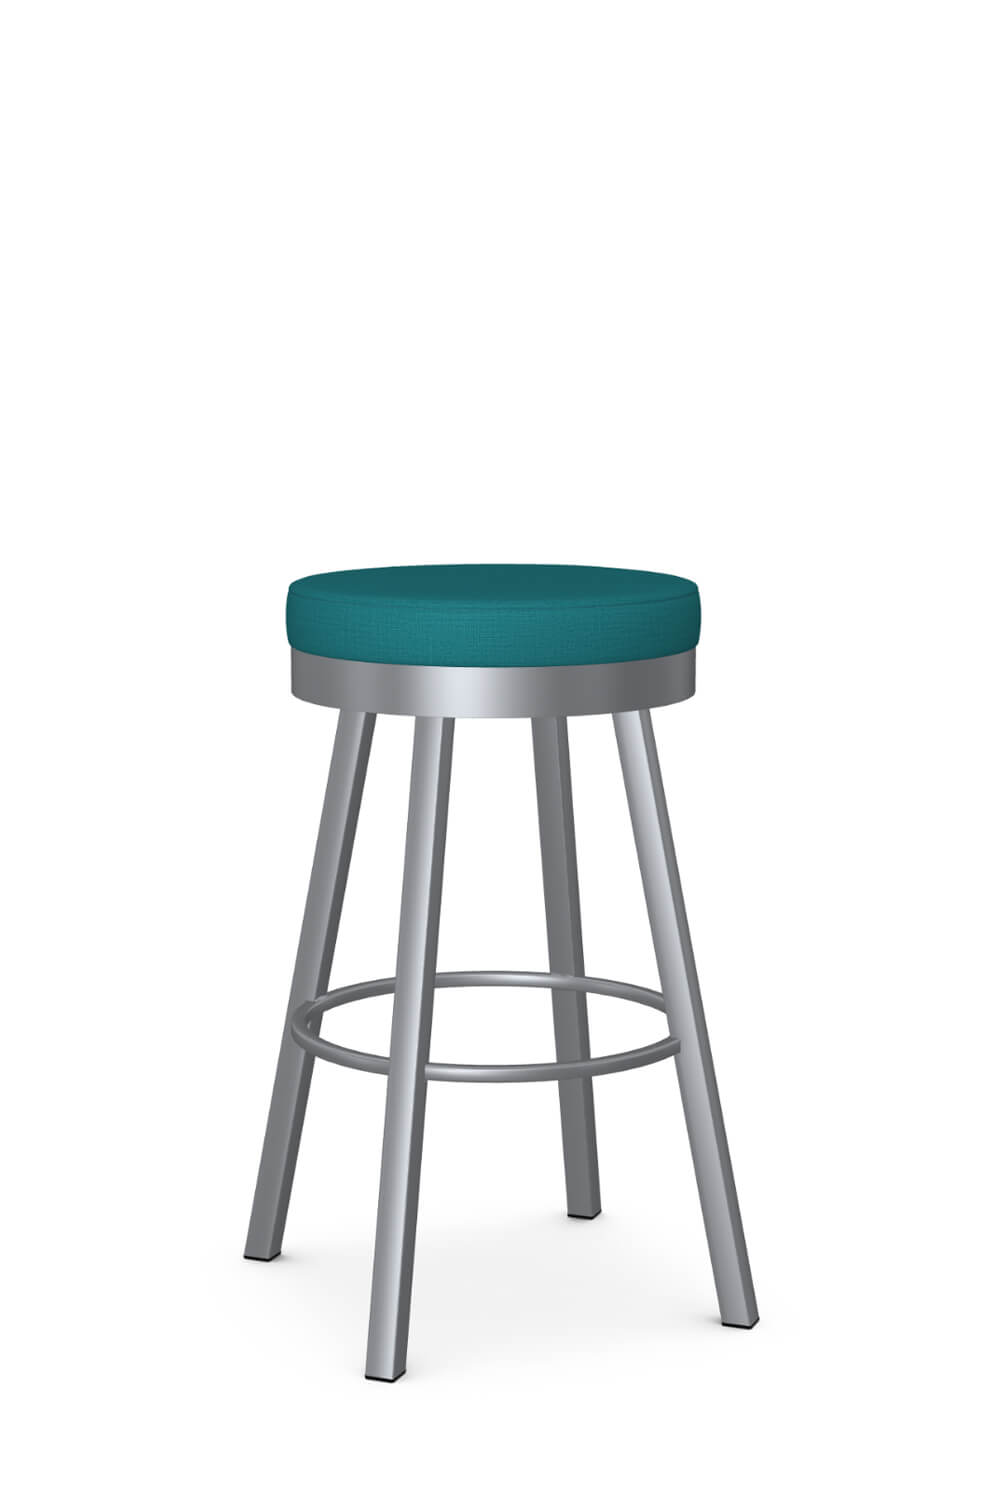 Picture of: Amisco Rudy Backless Swivel Stool For Modern Kitchens Free Shipping